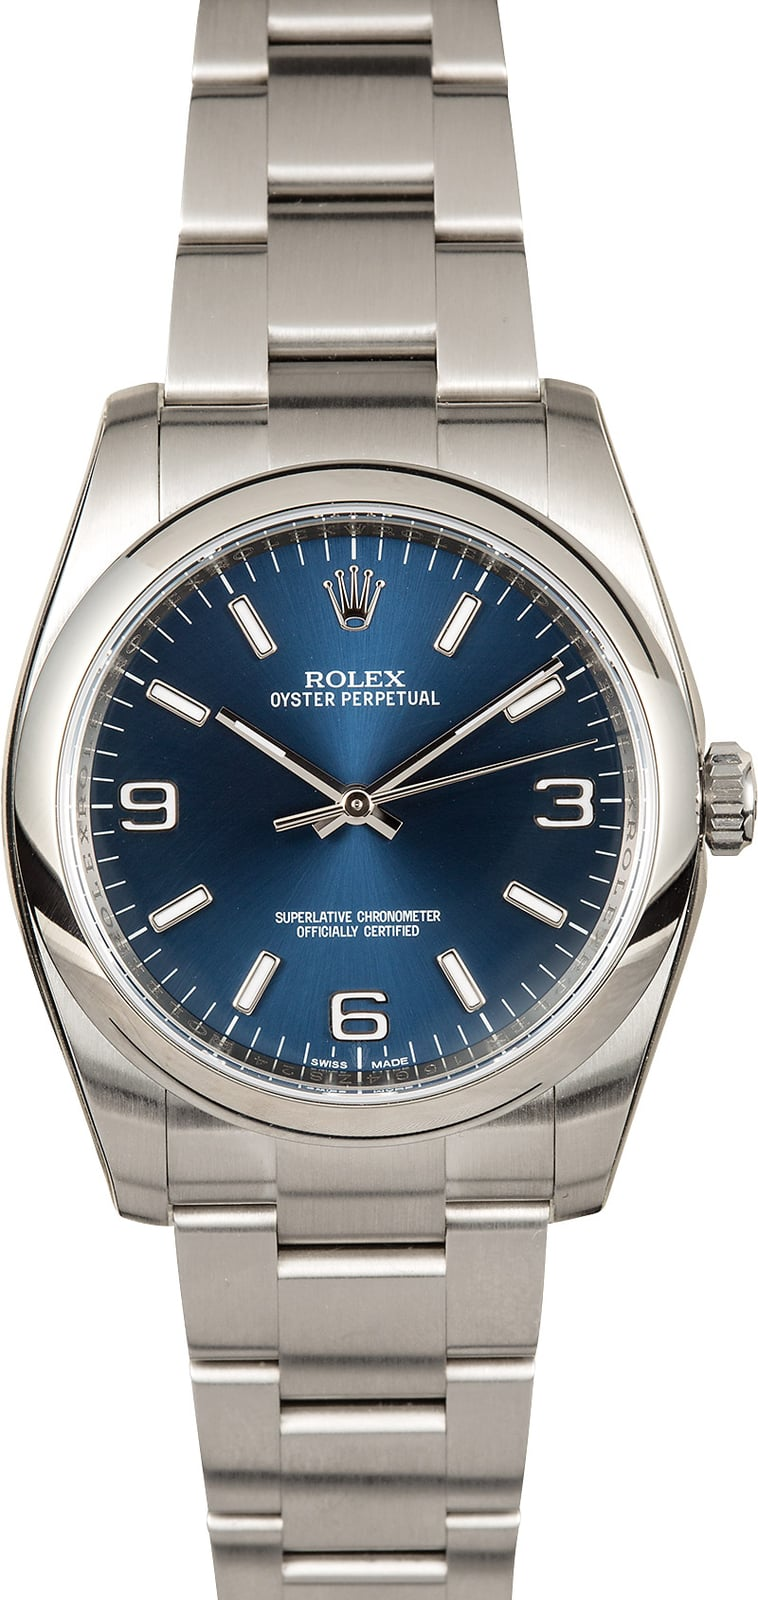 Rolex Oyster Perpetual 116000 Blue Dial